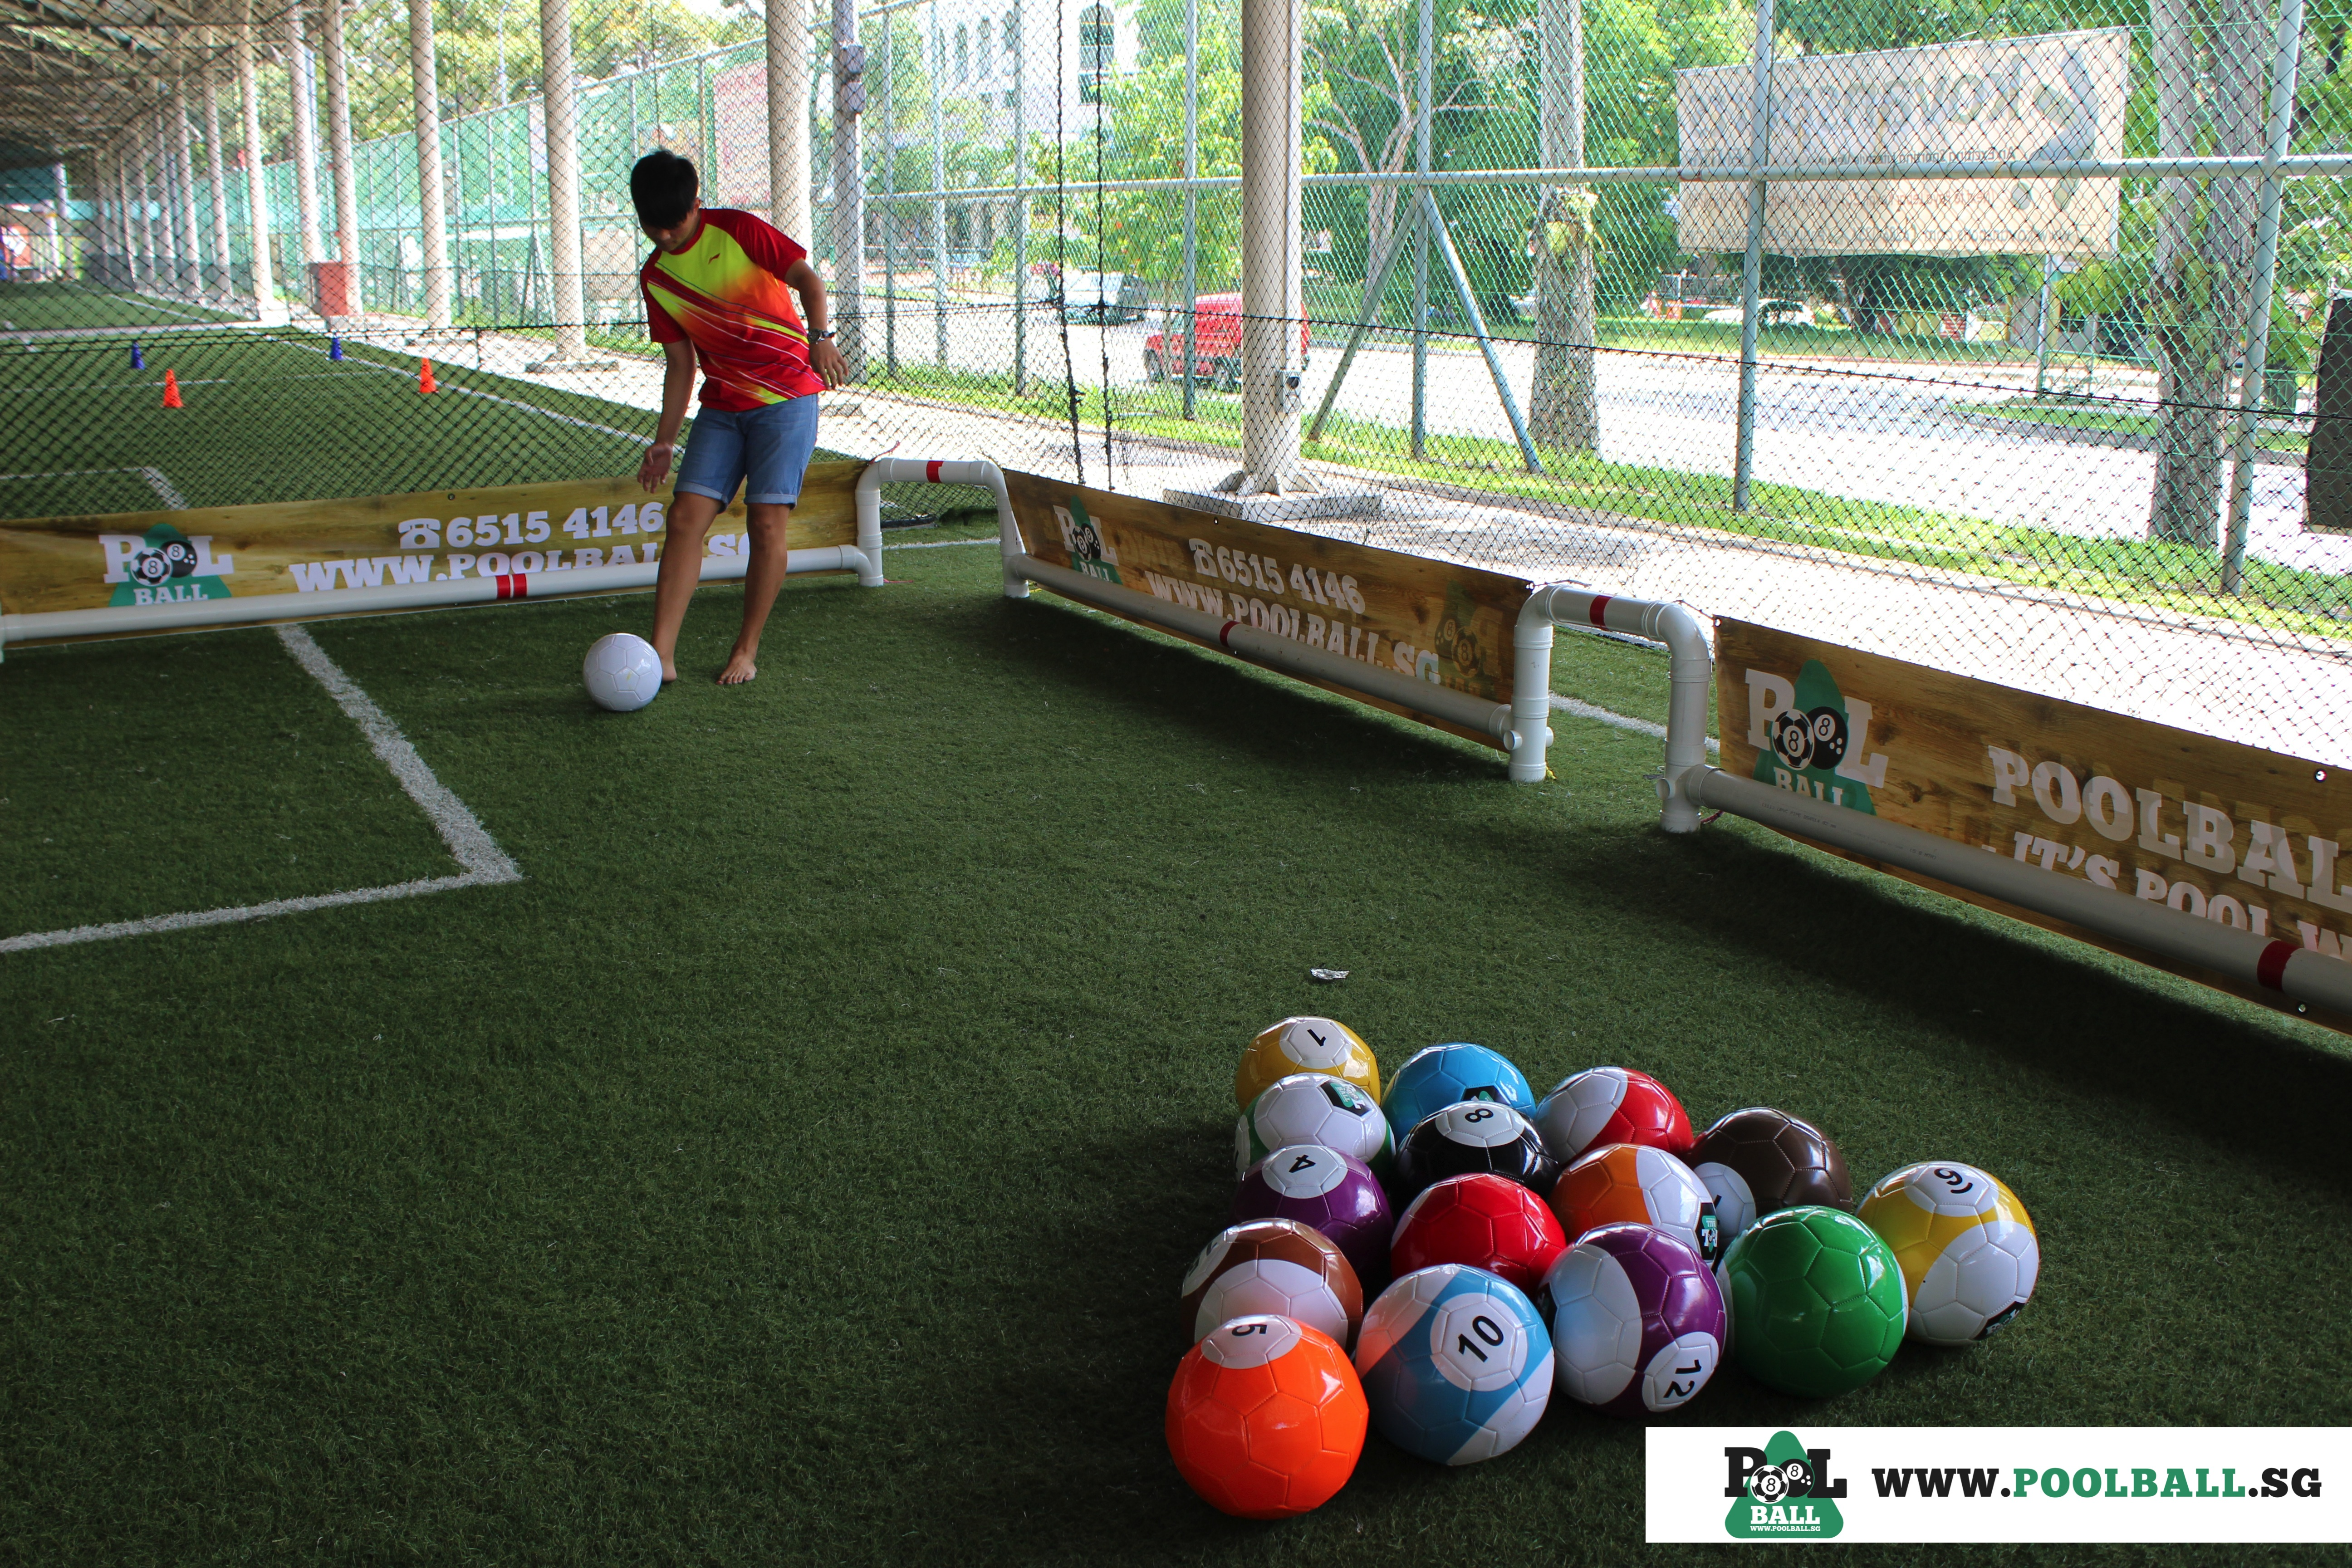 pool soccer singapore | Poolball Singapore